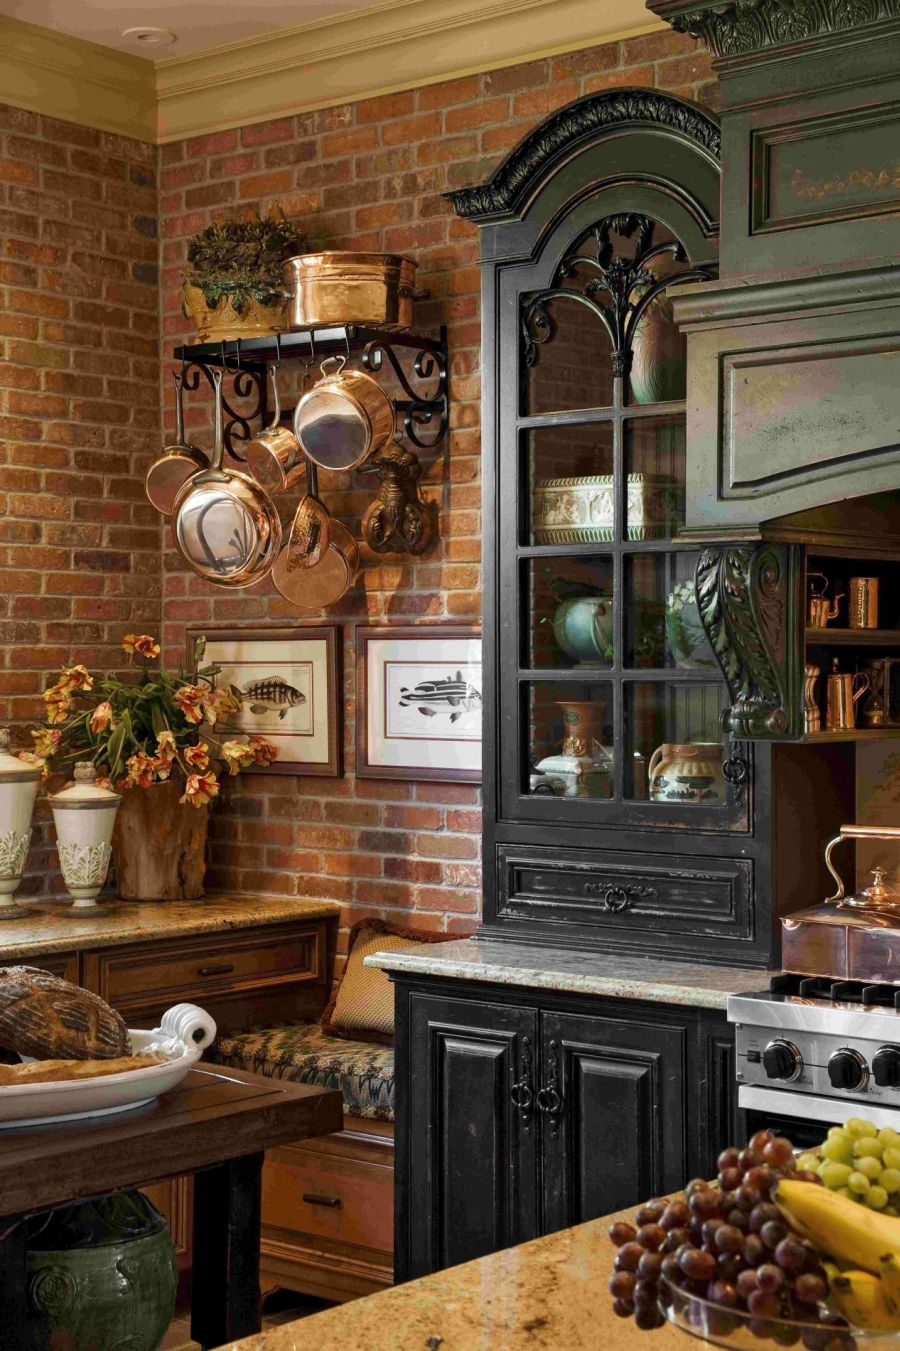 20 Ways to Create a French Country Kitchen Kitchen Cabinets With Brick Moulding on interior design with moulding, doors with moulding, bathroom with moulding,